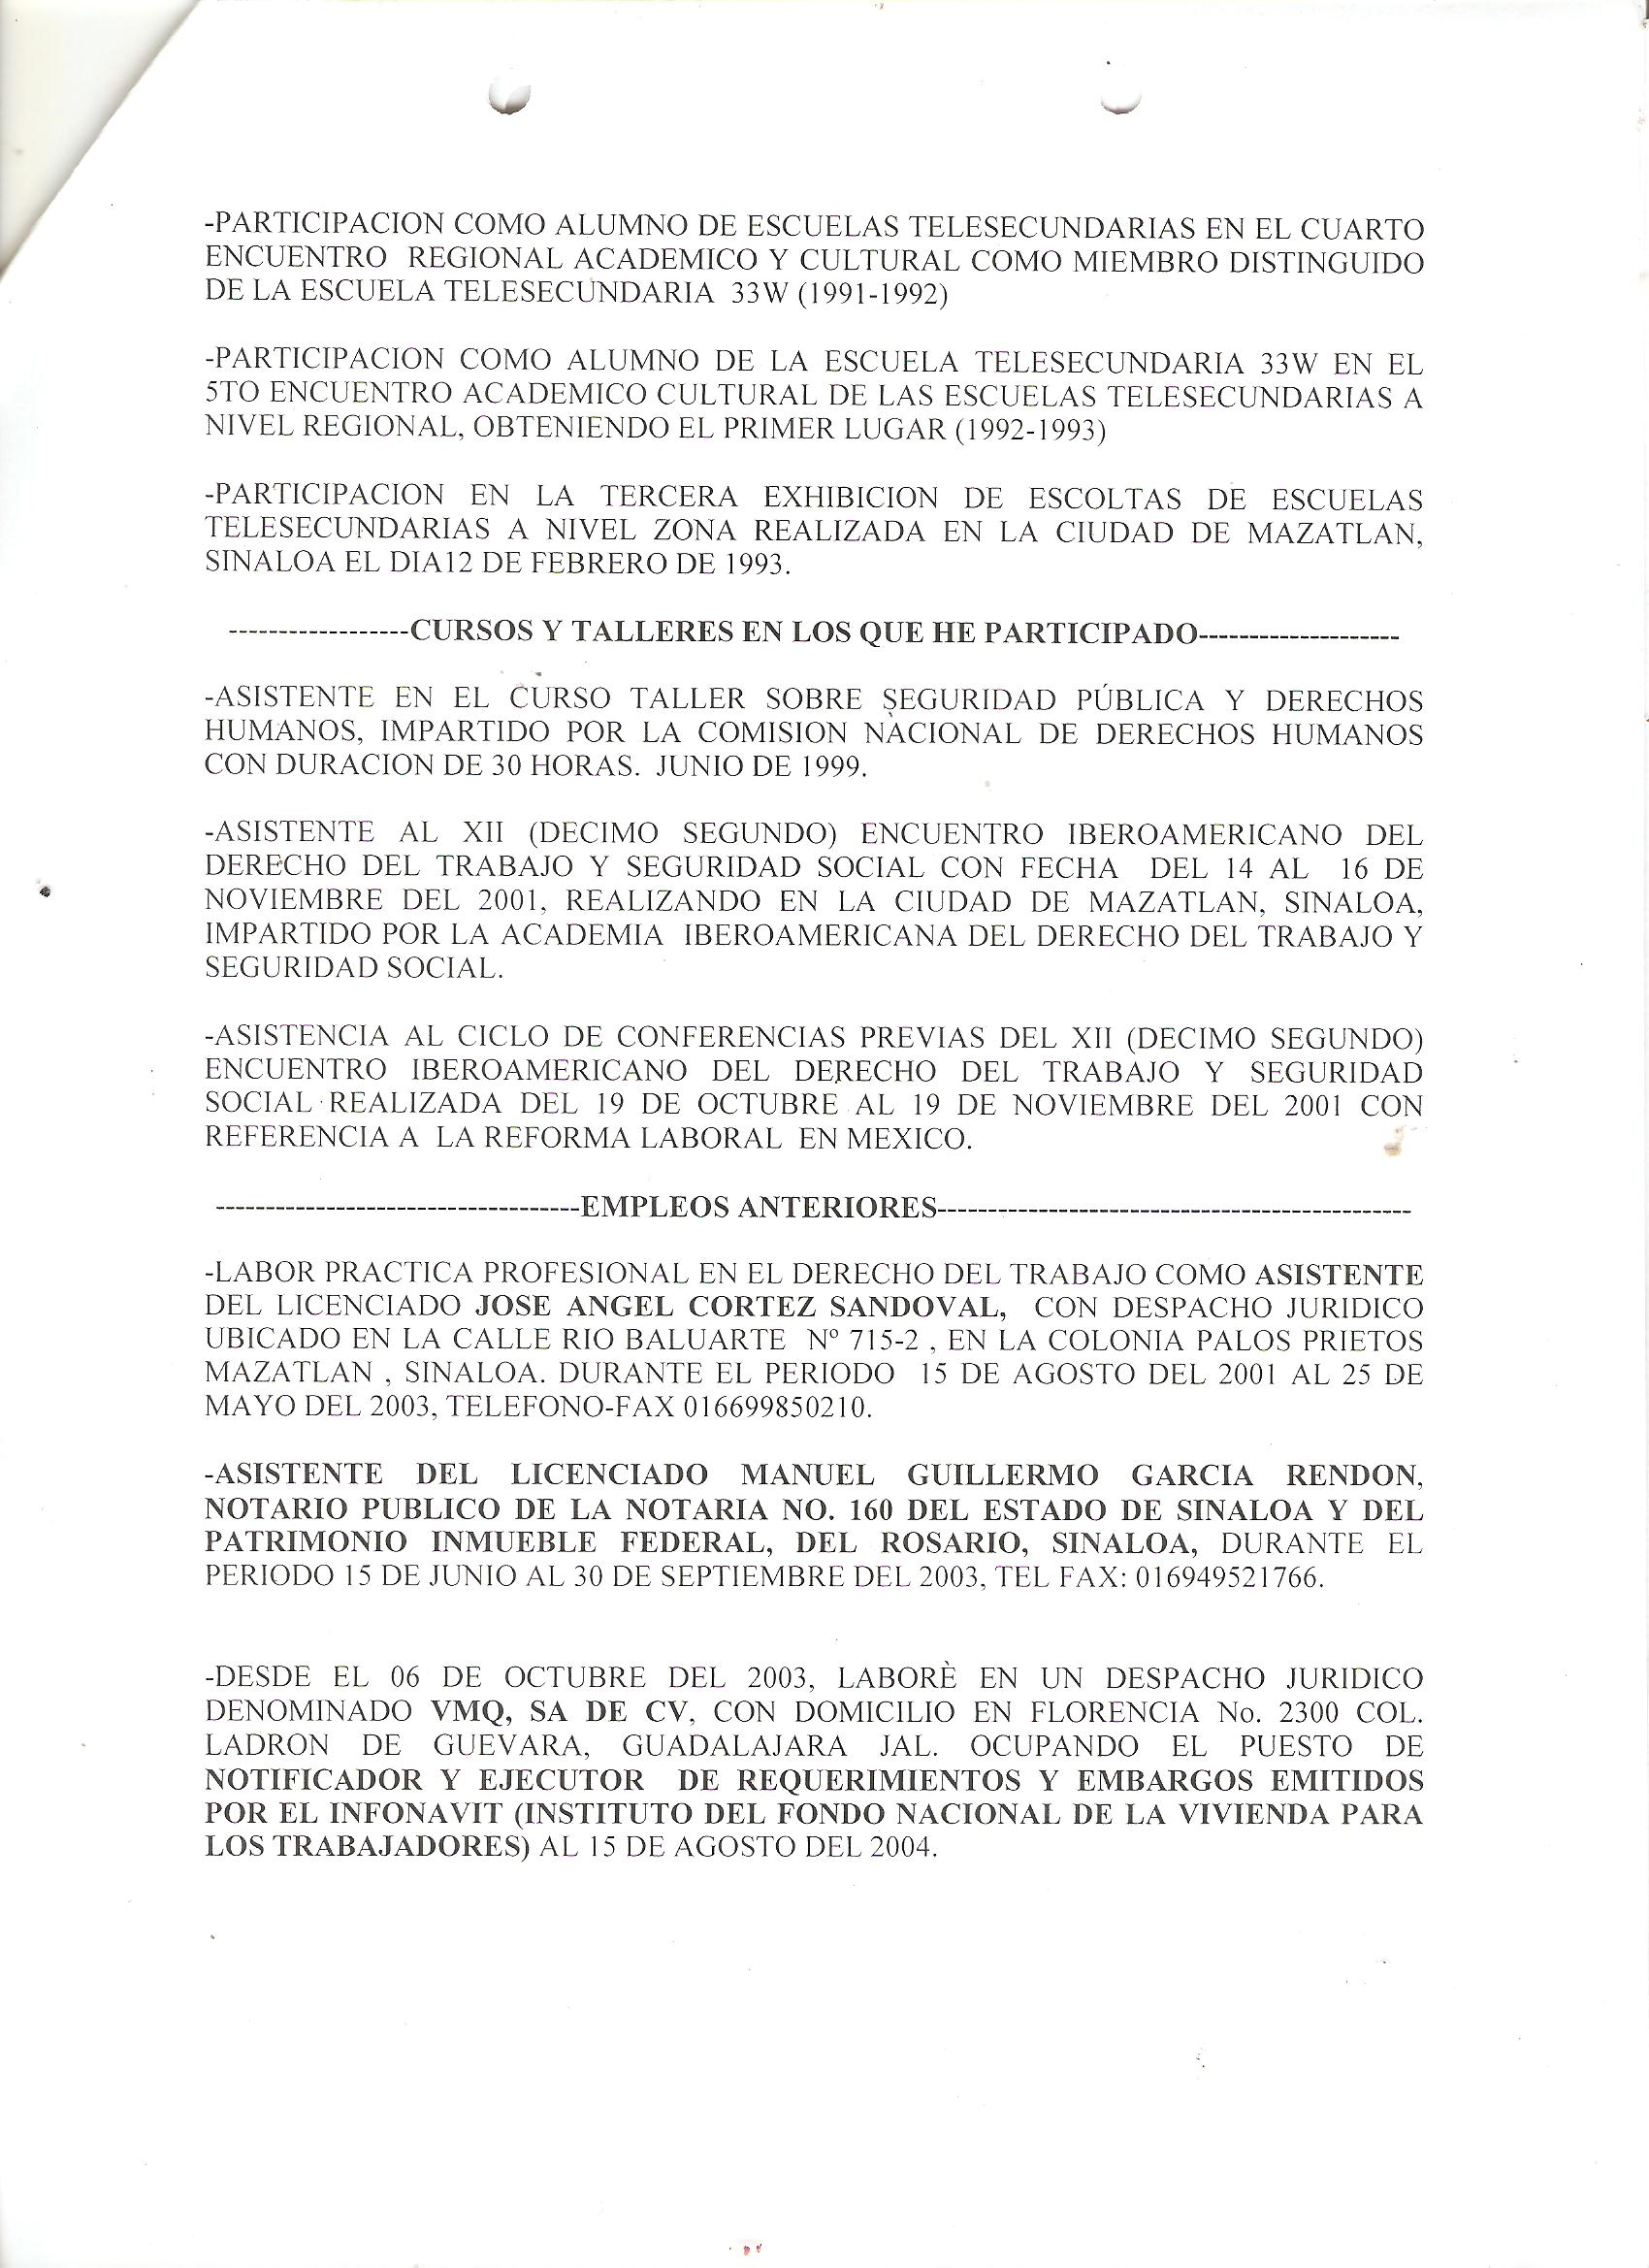 Index Of Plataforma Nacional Curriculum Vitae Servidores